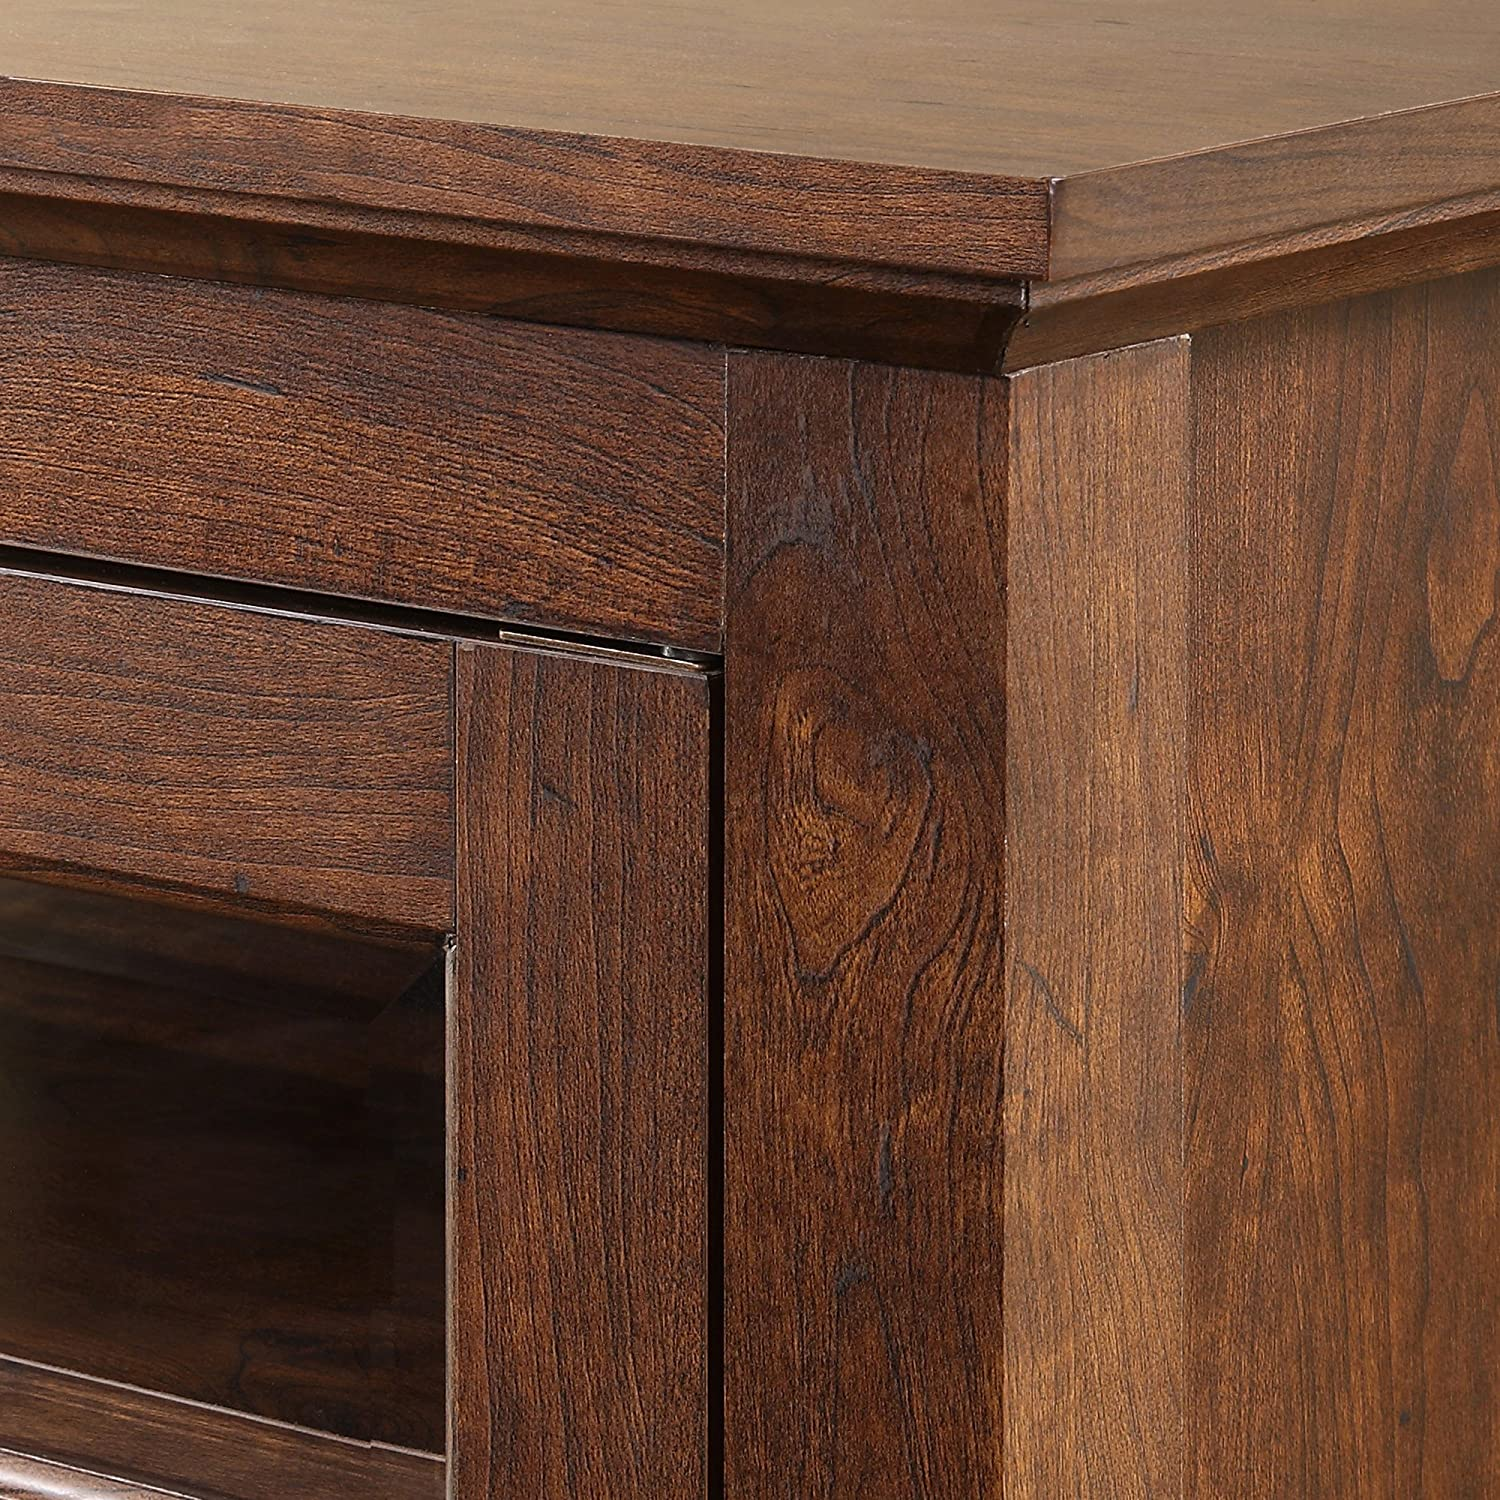 Walker Edison Furniture Company Modern Farmhouse Wood Corner Universal Stand for TVs up to 50 Flat Screen Living Room Storage Entertainment Center Barnwood Brown